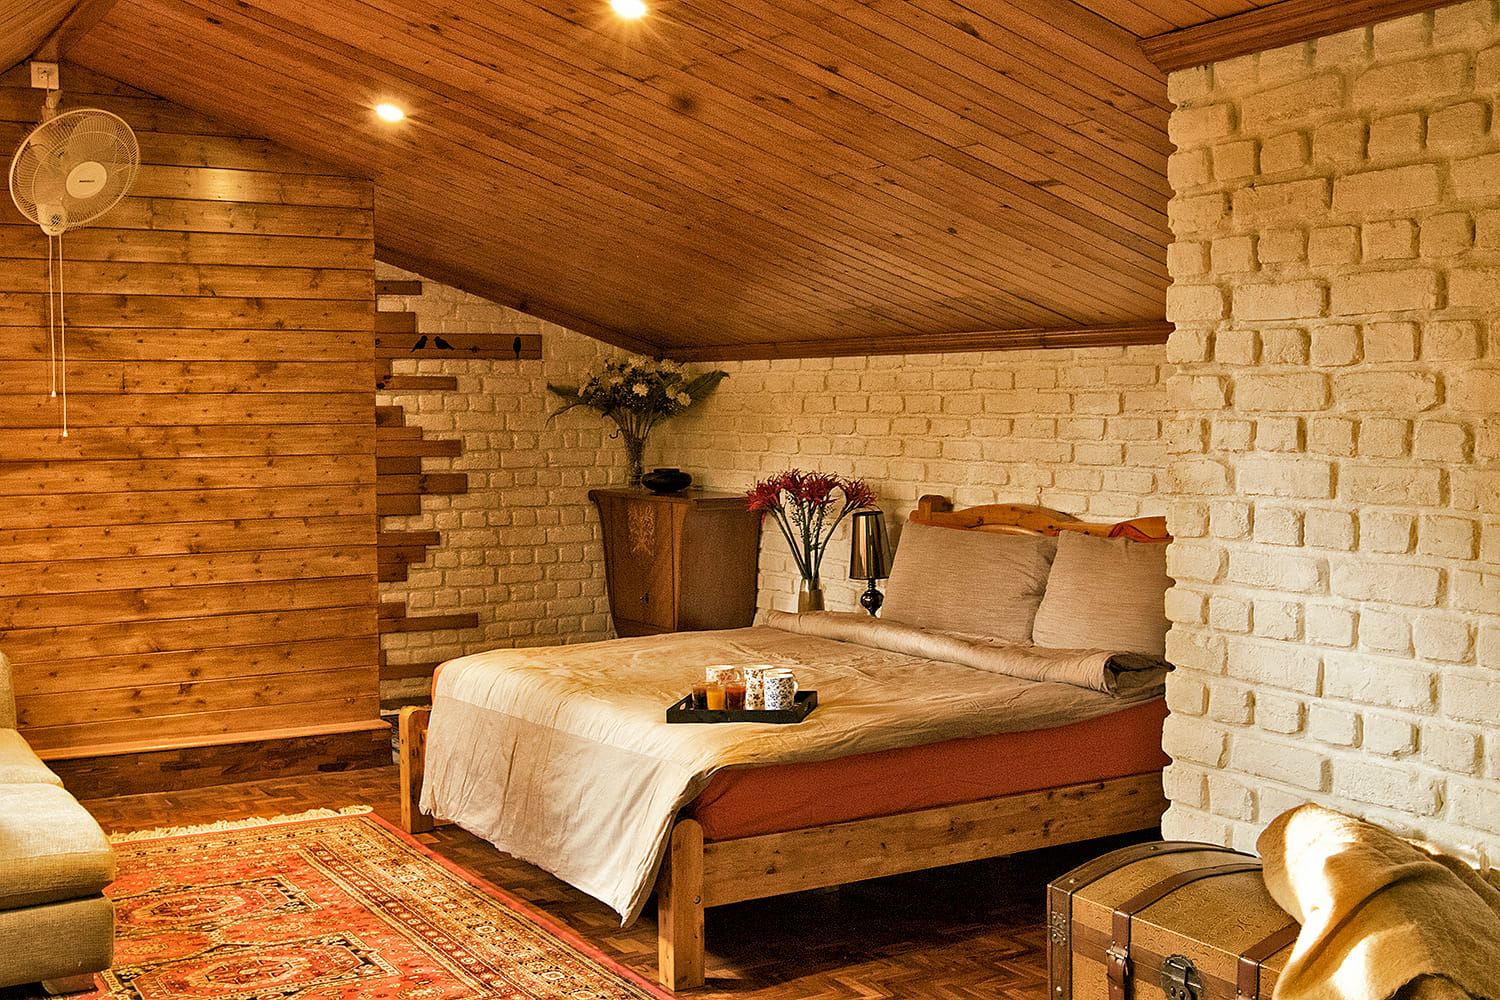 Cozy bedroom with wooden accents and white brick walls